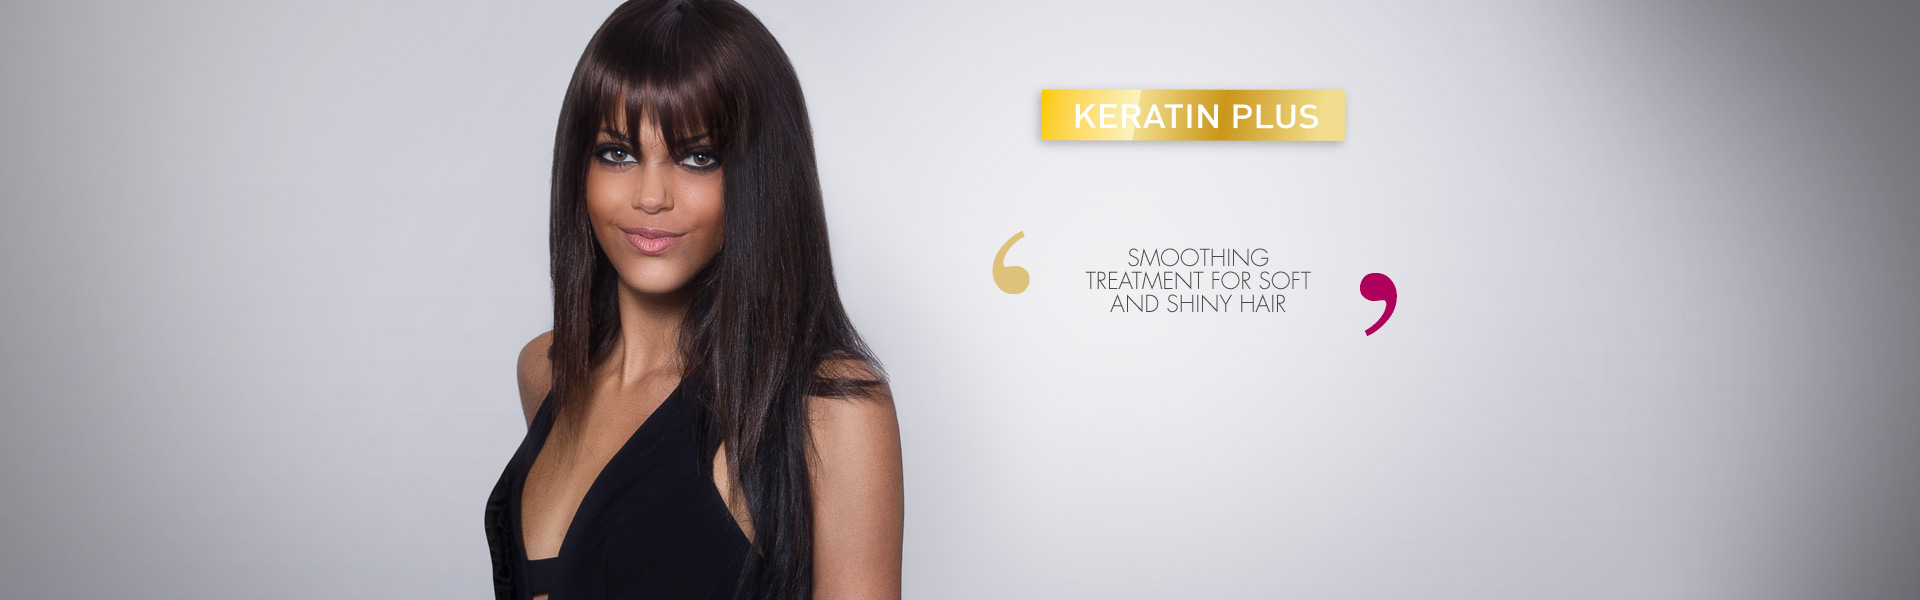 keratin plus smoothing